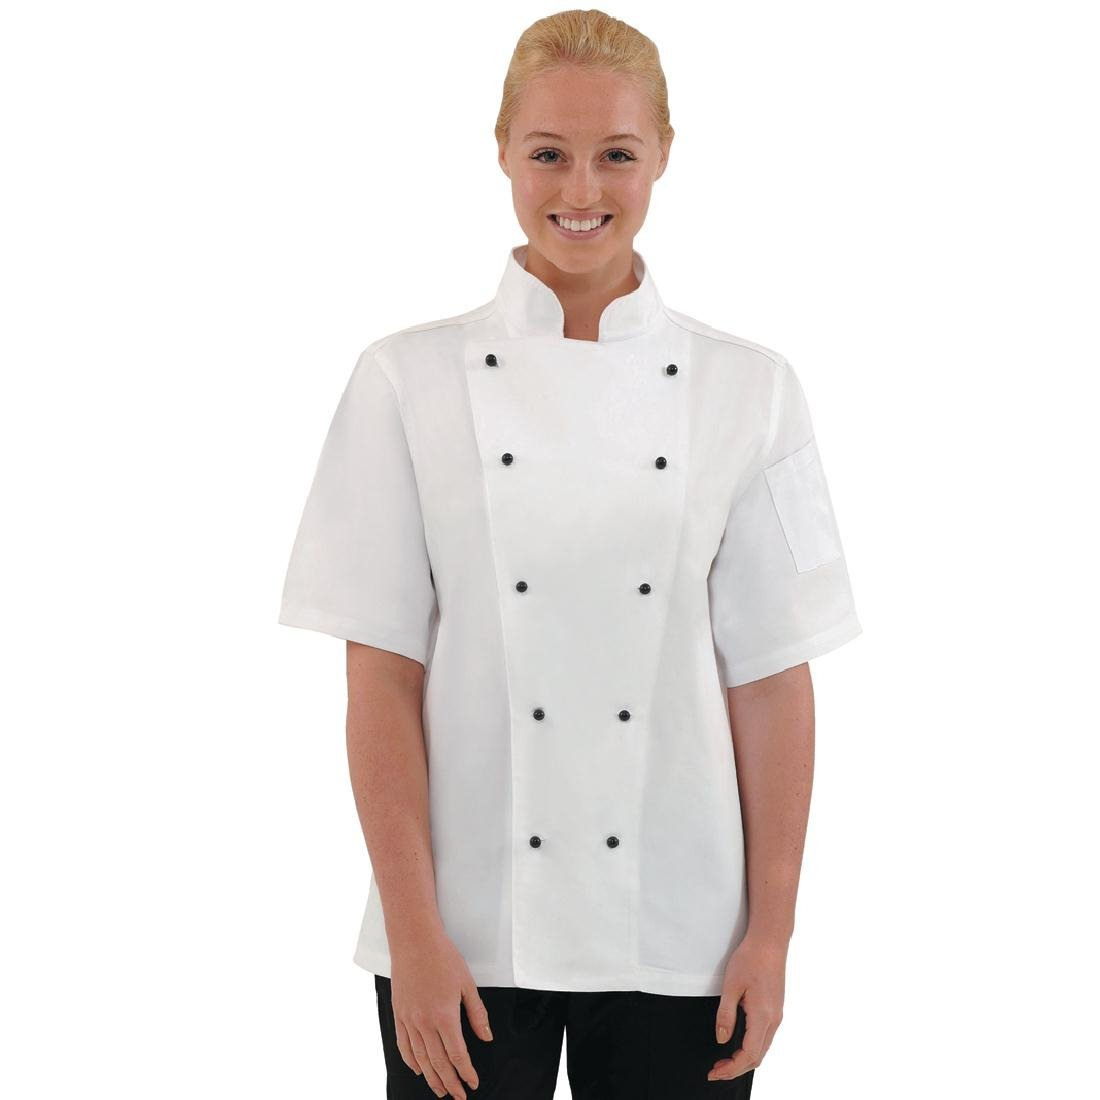 Busy White Short Sleeve Ladies Jacket